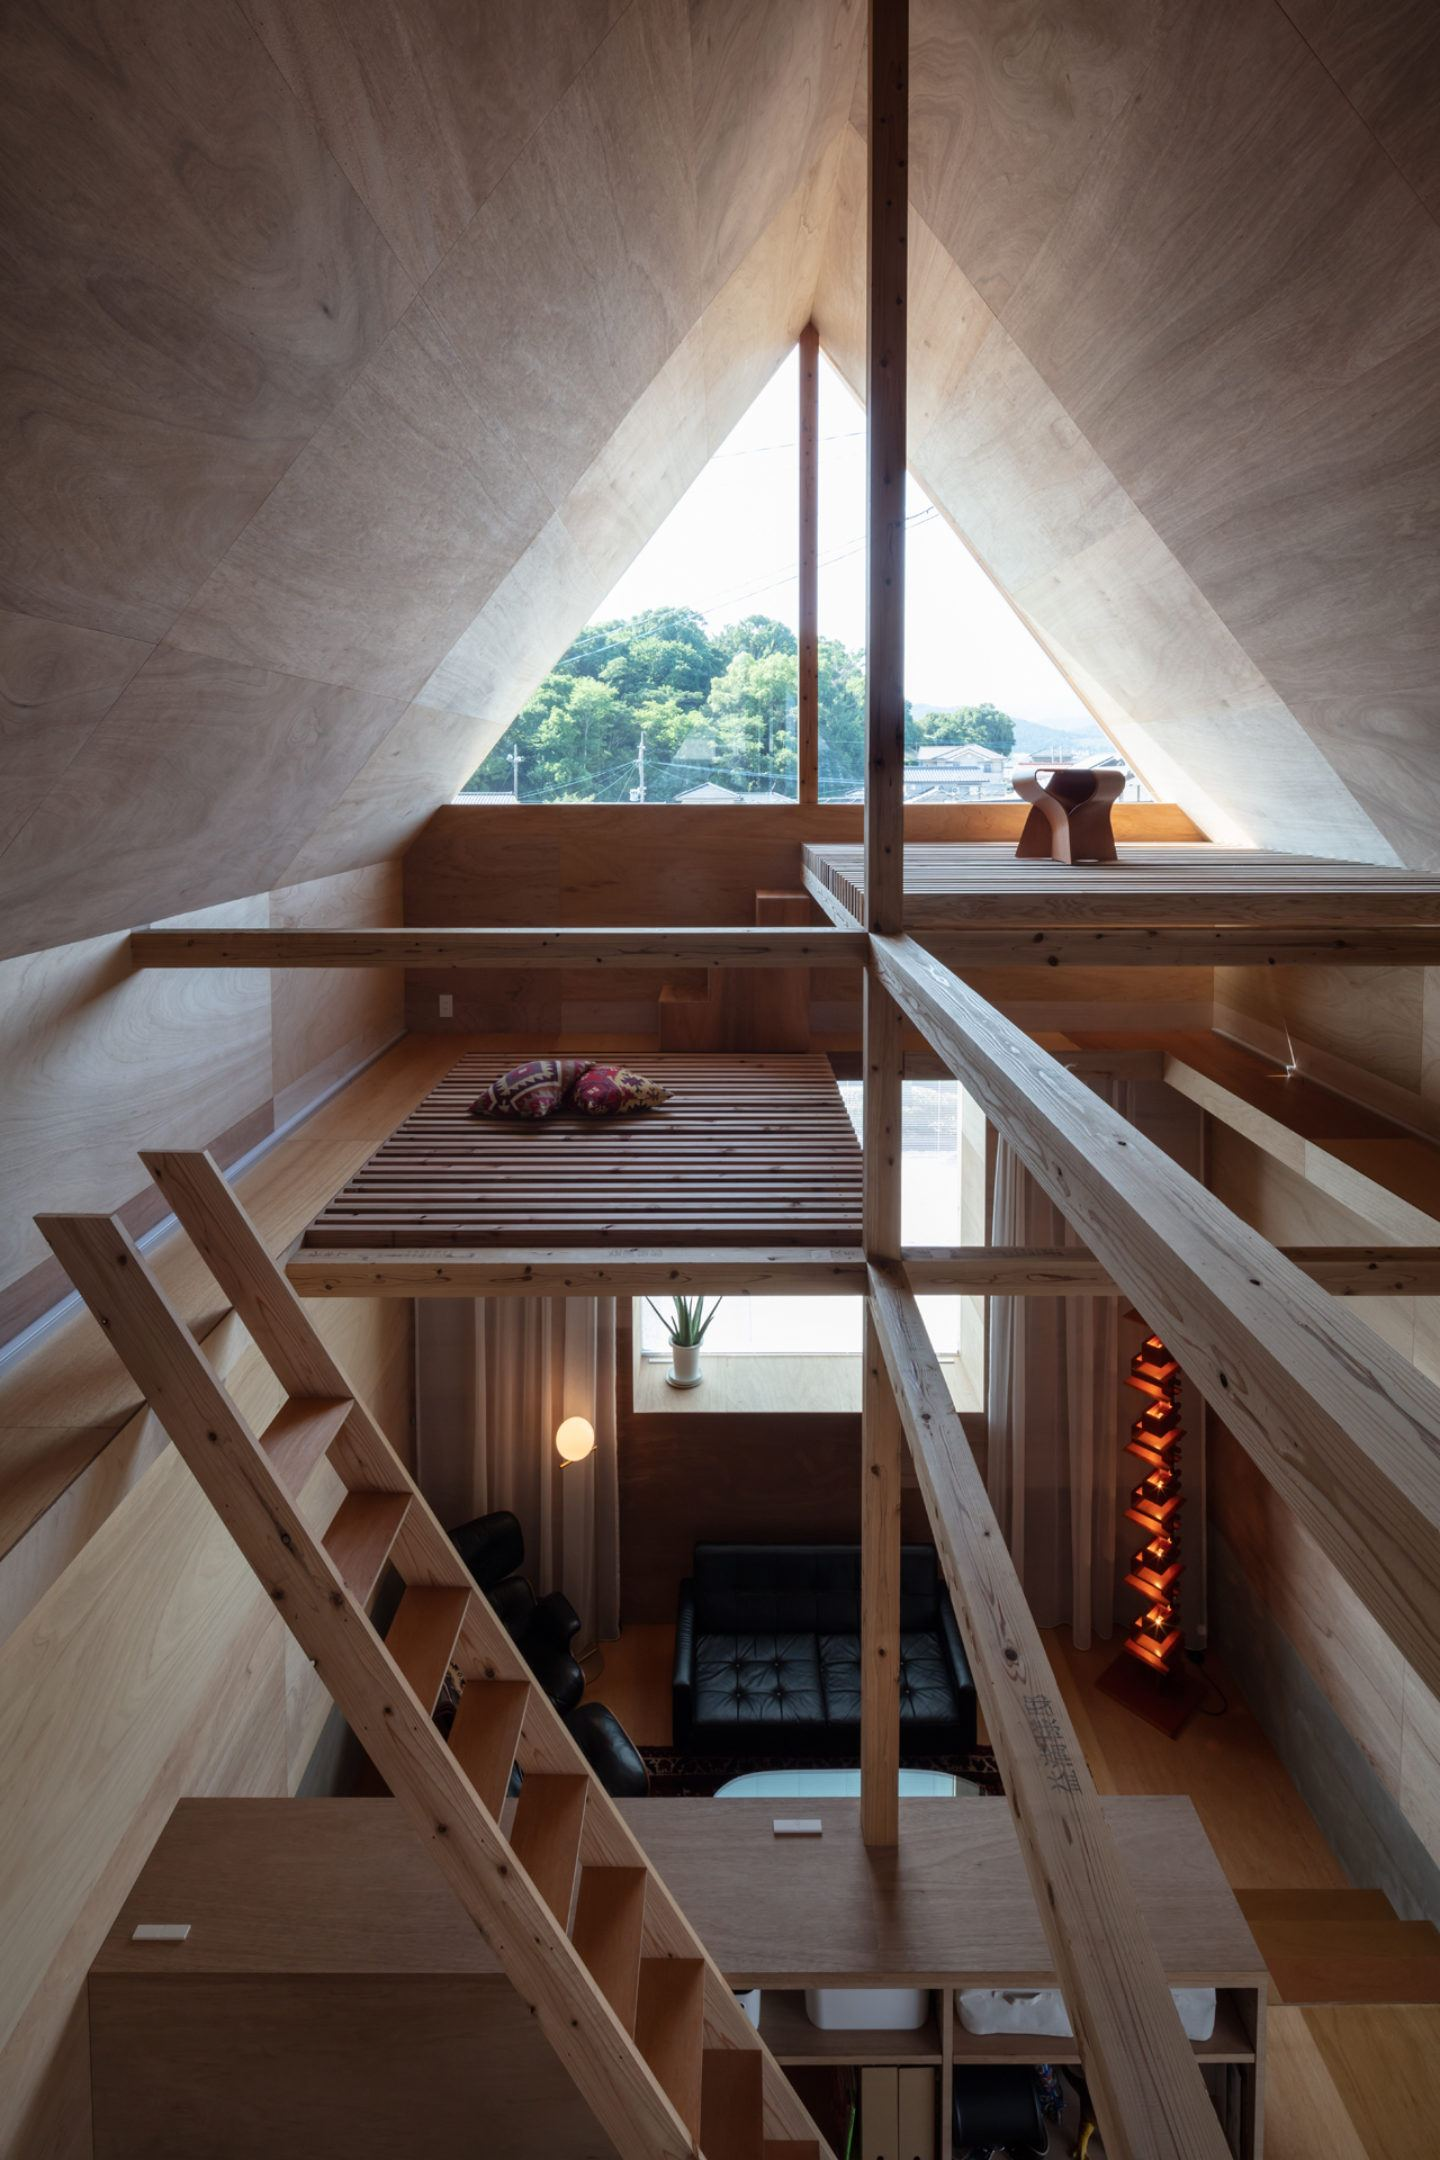 IGNANT-Architecture-YN-Architects-Masumitsu-House-8